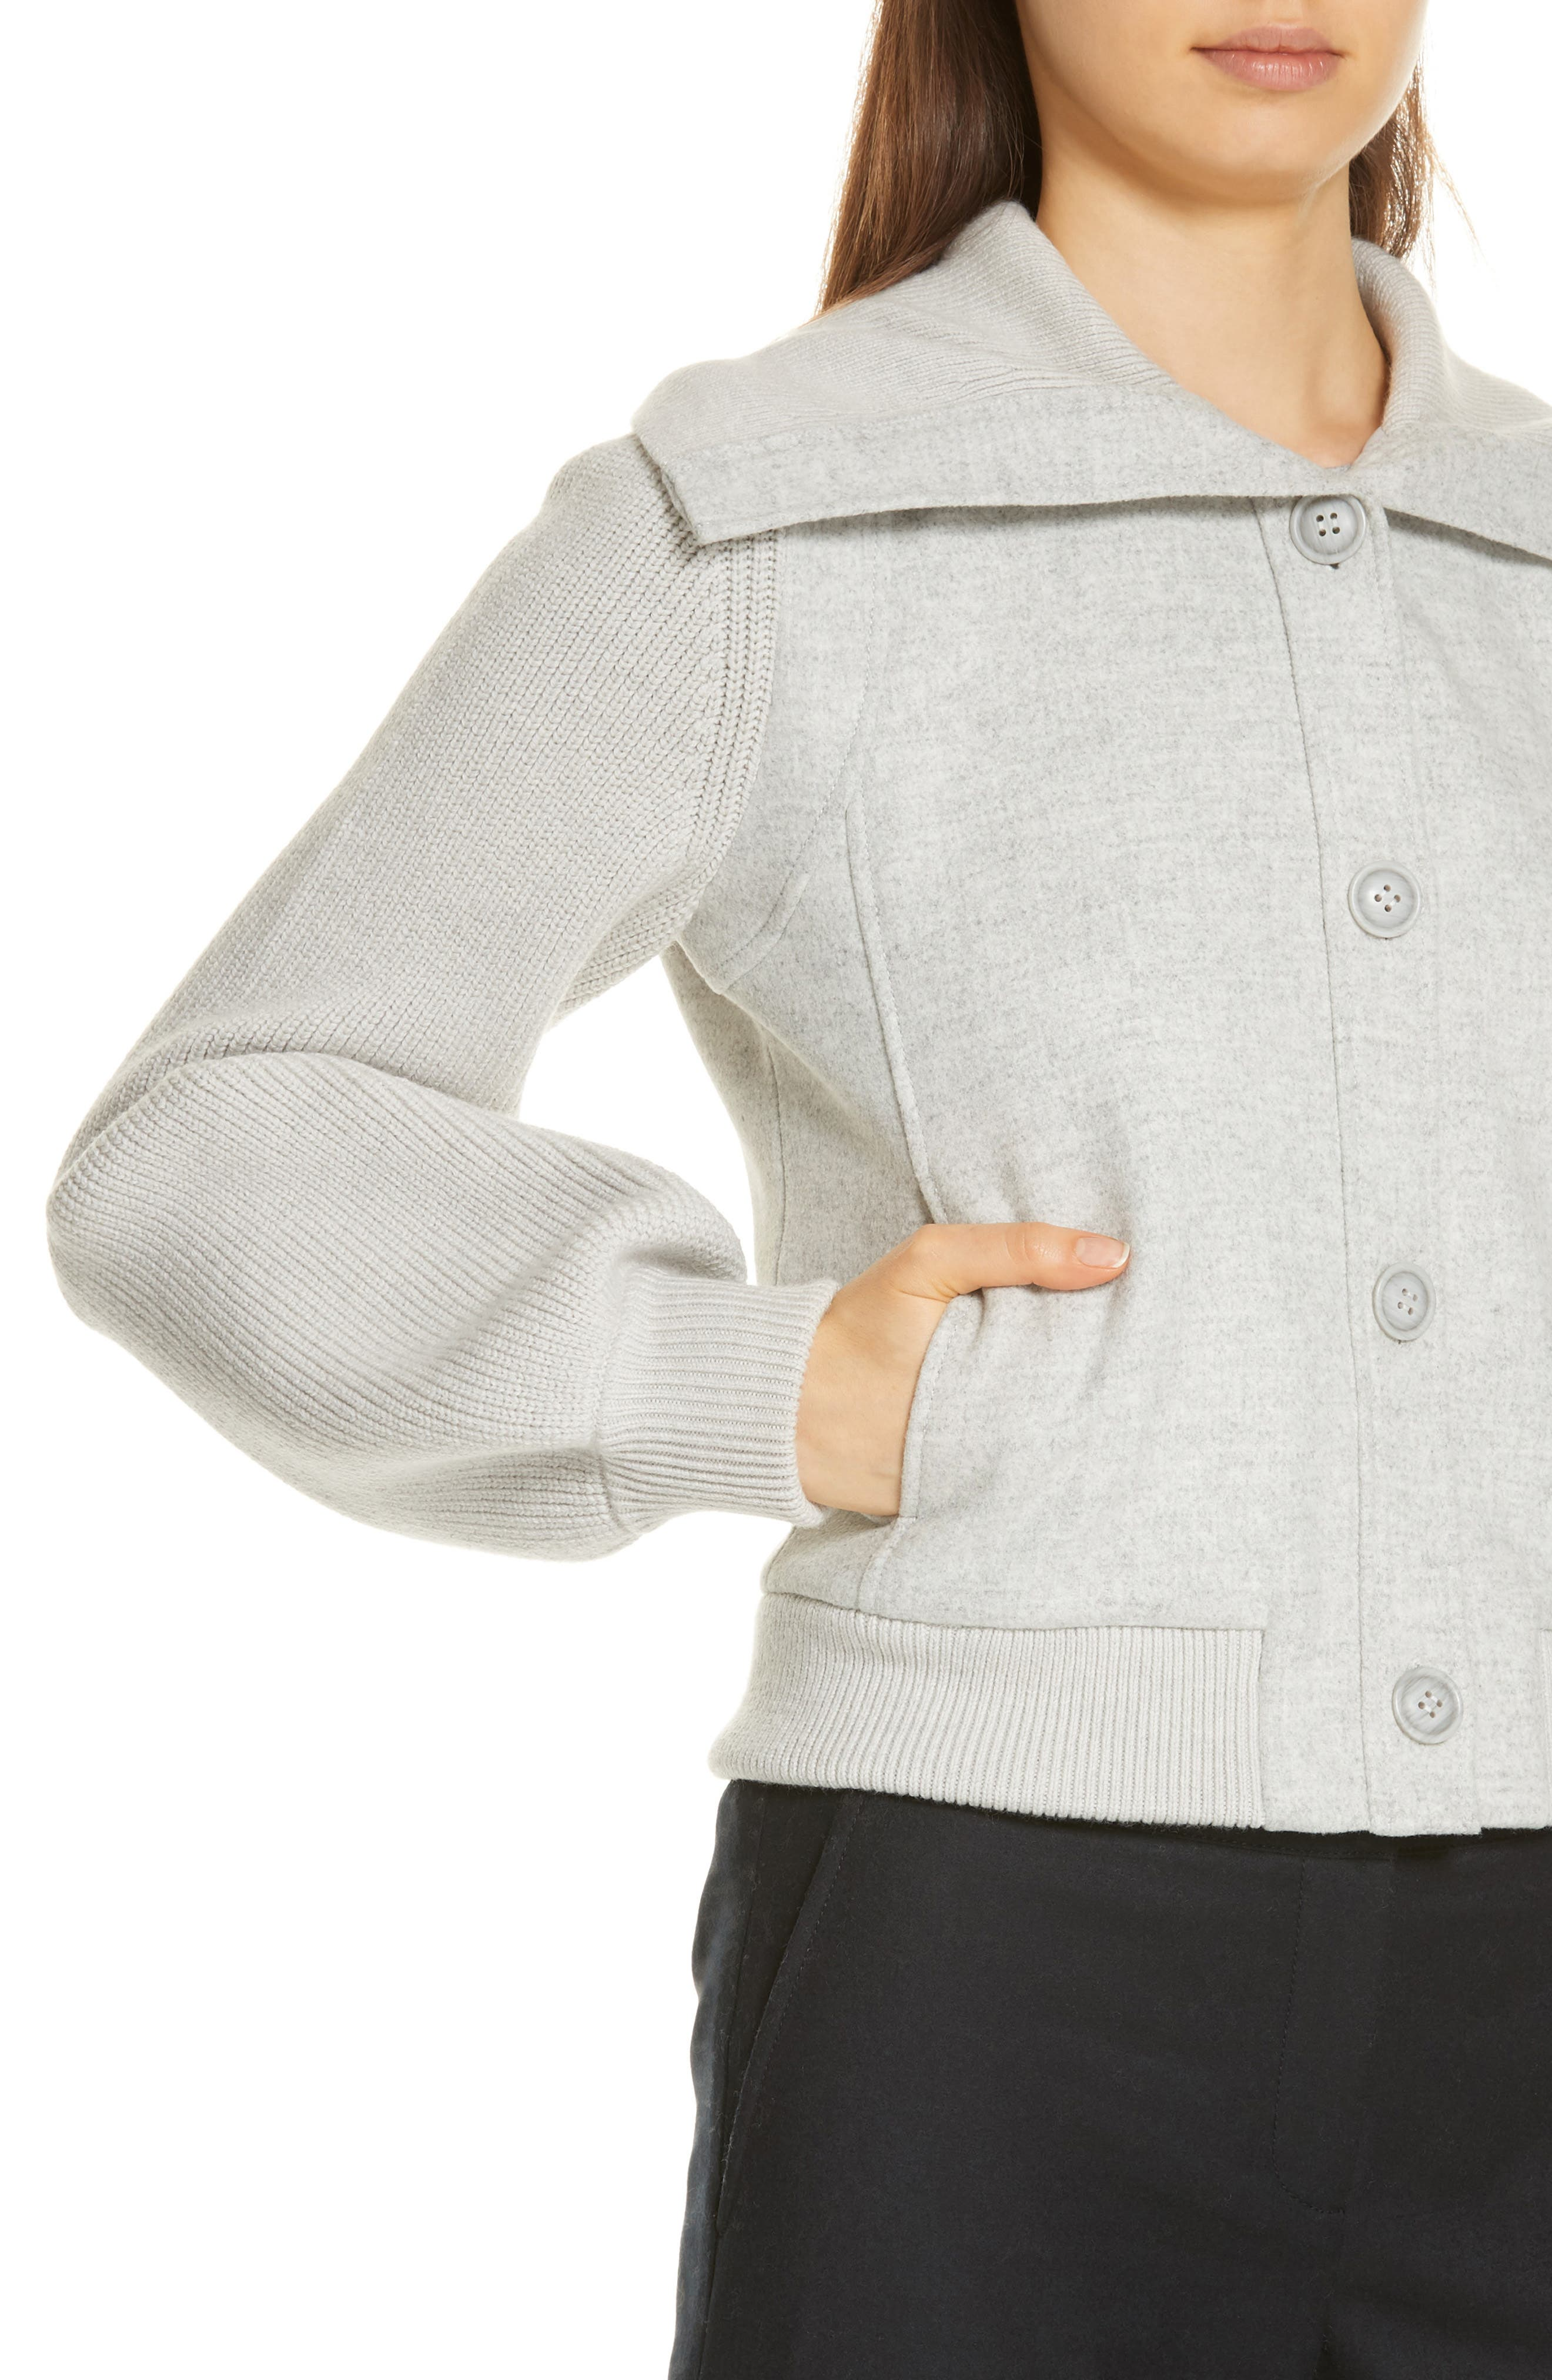 Sweater Detail Jacket,                             Alternate thumbnail 4, color,                             GREY CLAY HEATHER